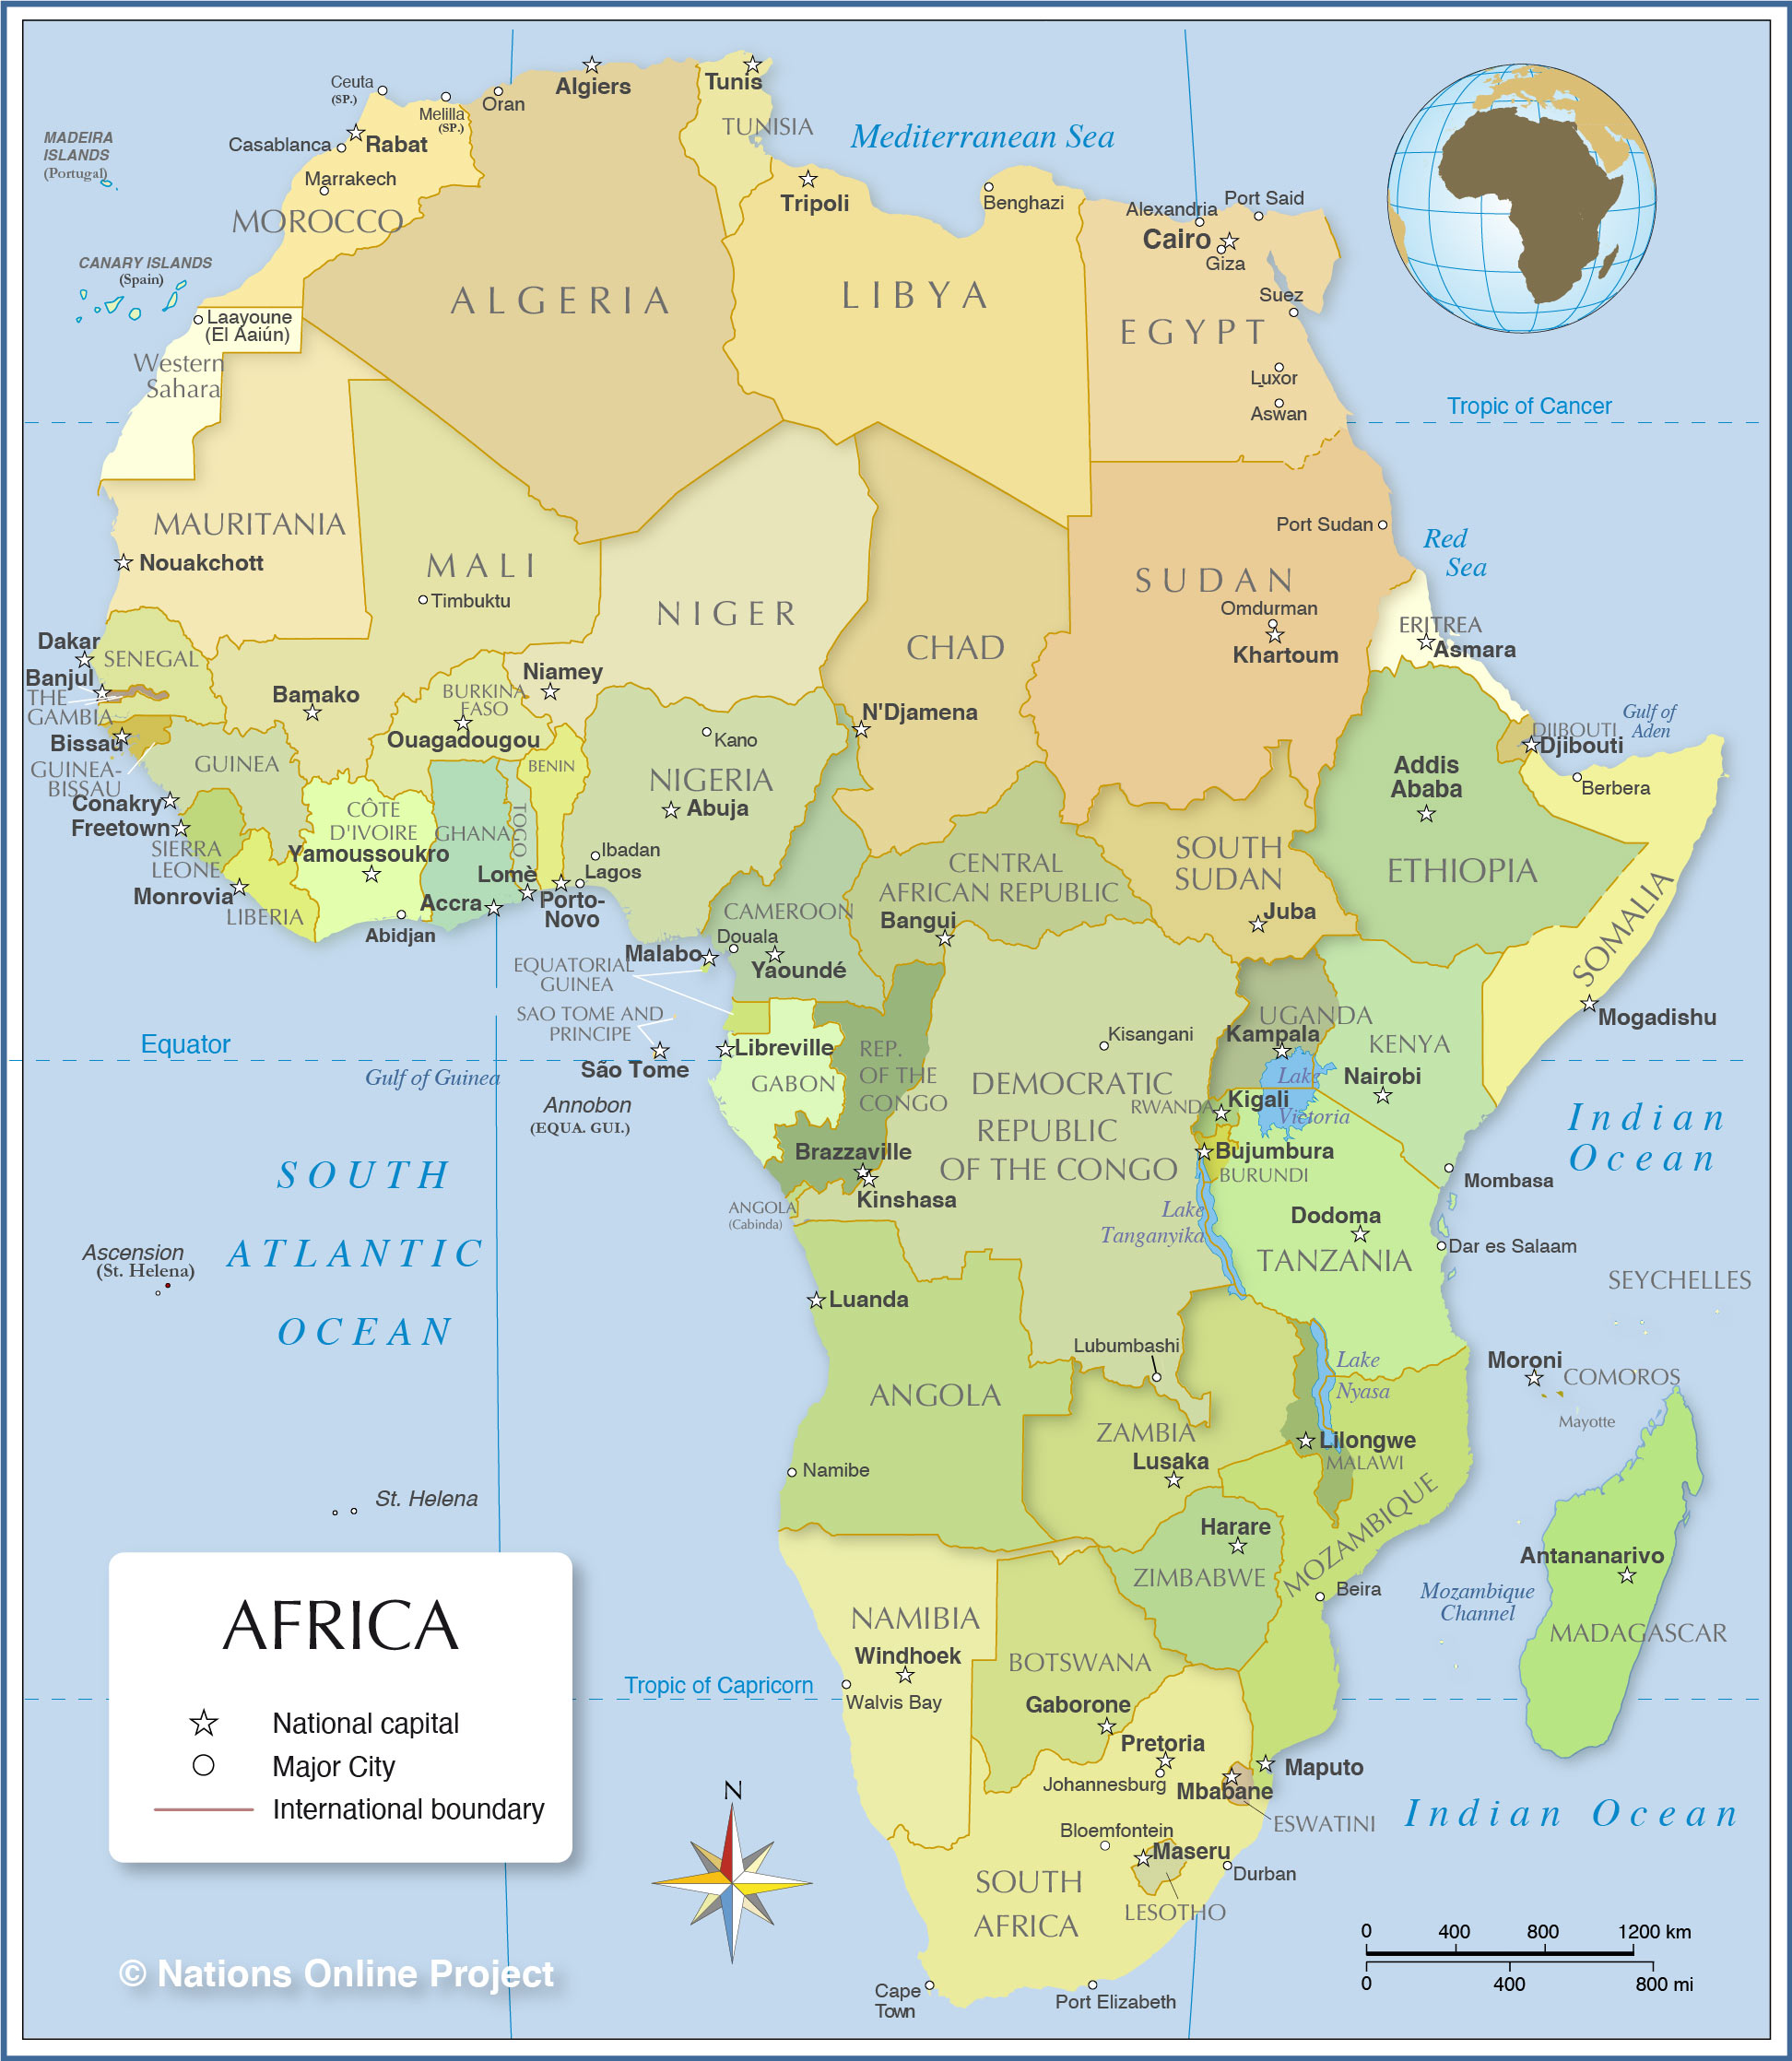 Africa Map With Capitals Political Map of Africa   Nations Online Project